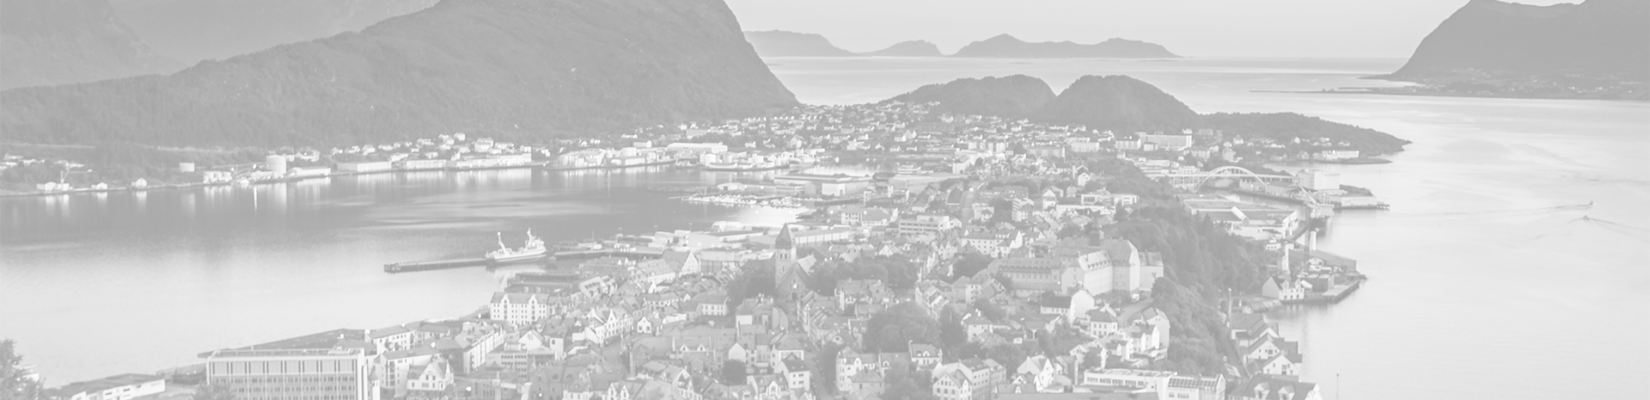 Transparent-Gray View of Town in Norway - BluJay Customs Management